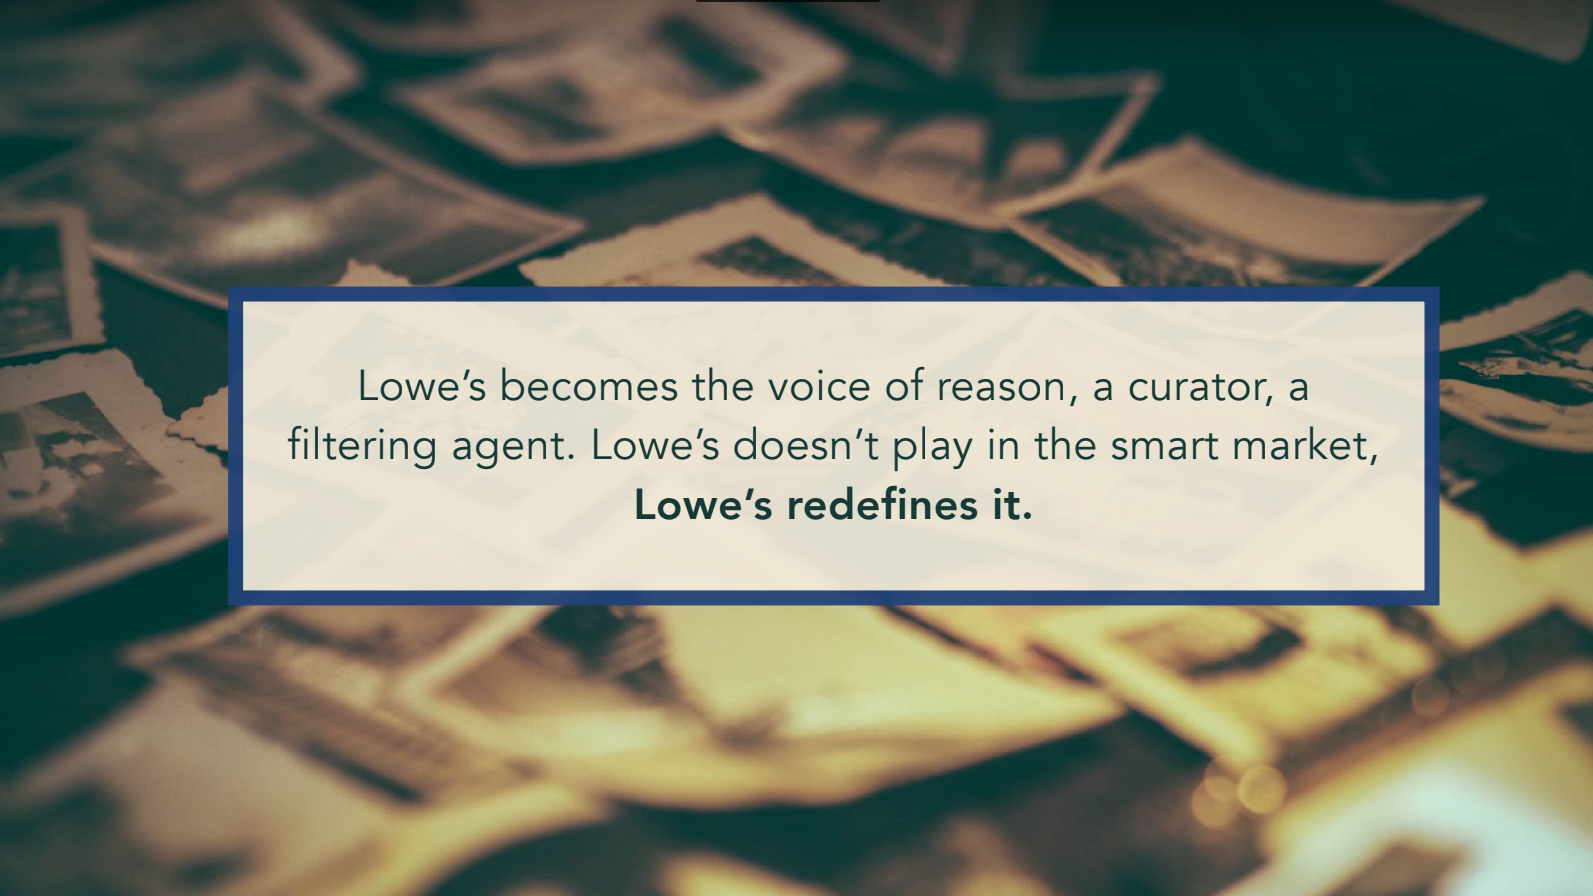 """The Brand Essence. Lowe's is simplifying smart home technology for the Care Pair audience by removing the word """"smart,"""" and instead focusing on the empowerment and adaptability that the technology offers seniors who wish to age in place, without placing a burden on their children."""